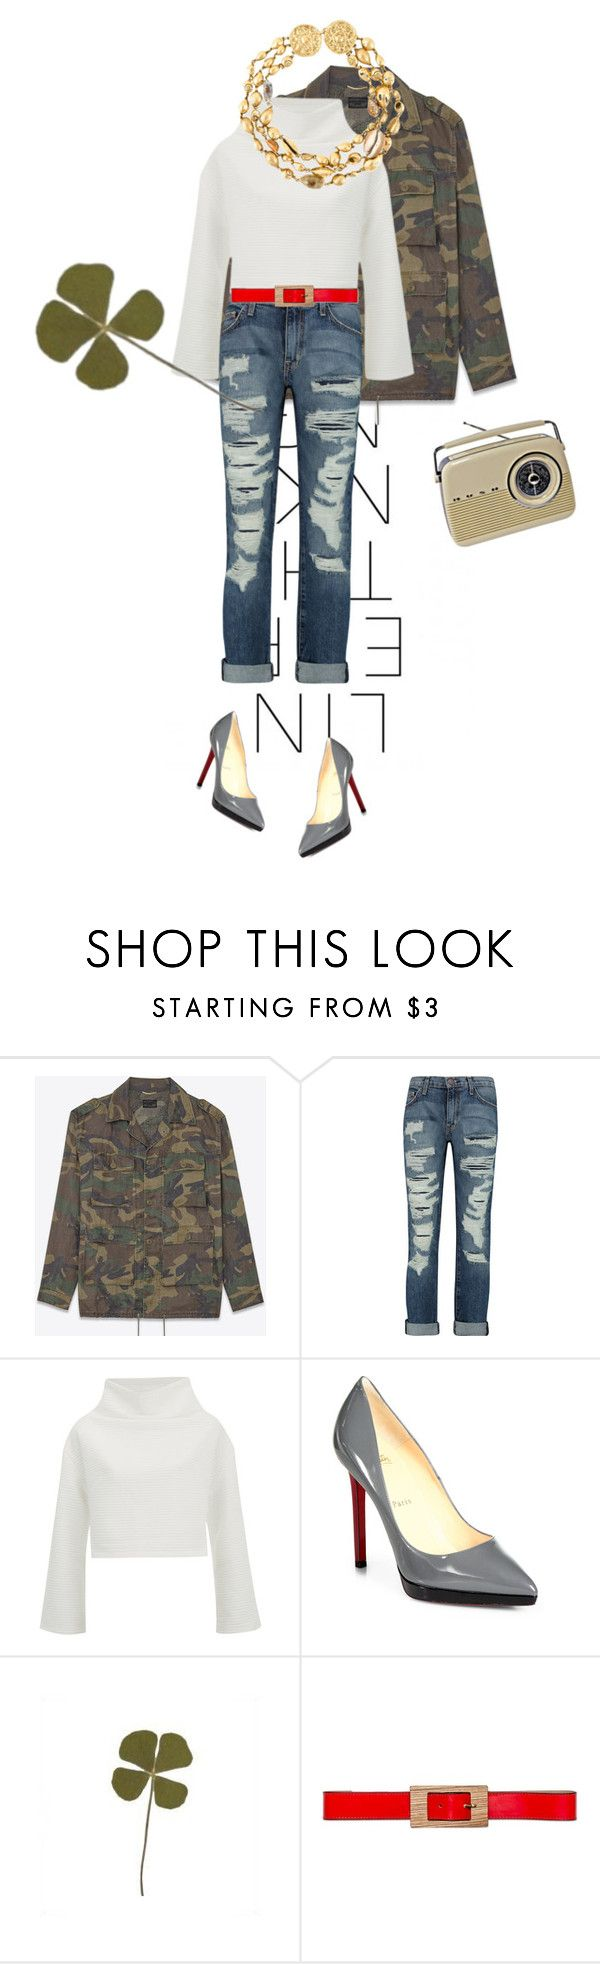 """I hear mariachi static on my radio"" by misnik ❤ liked on Polyvore featuring Yves Saint Laurent, Current/Elliott, Christian Louboutin, Marni, women's clothing, women, female, woman, misses and juniors"